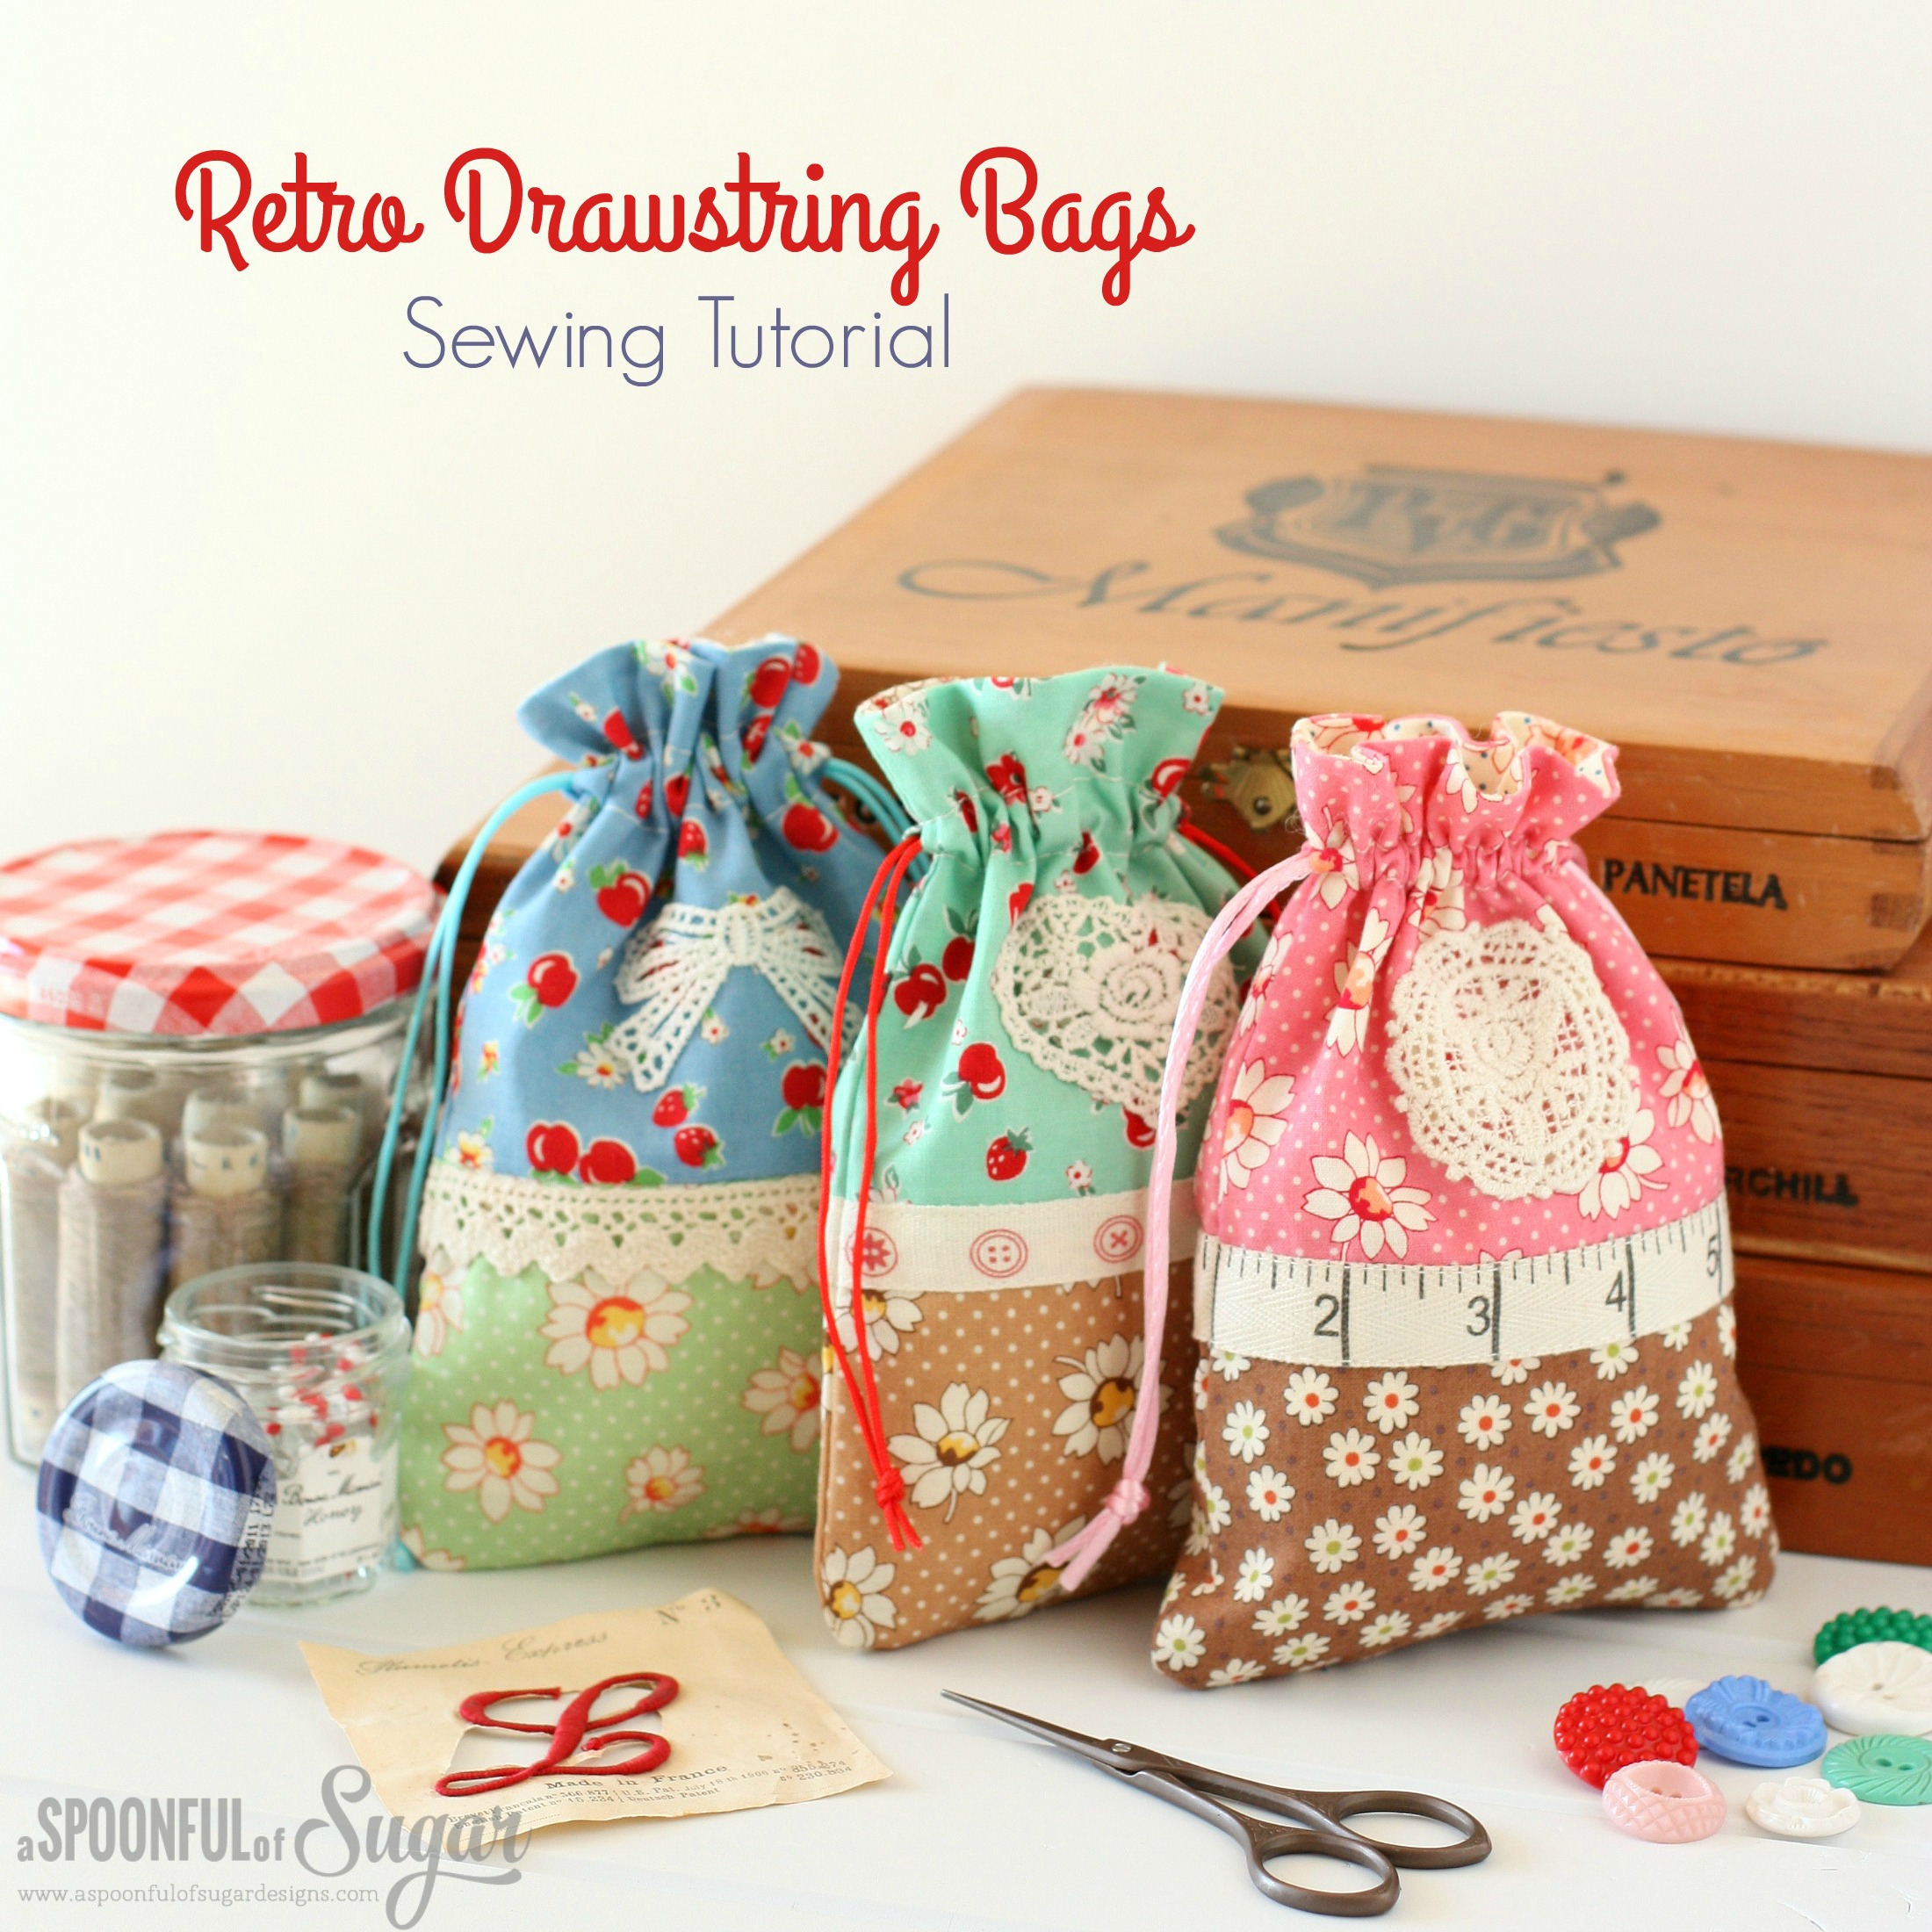 Retro Drawstring Bags - sewing tutorial by A Spoonful of Sugar